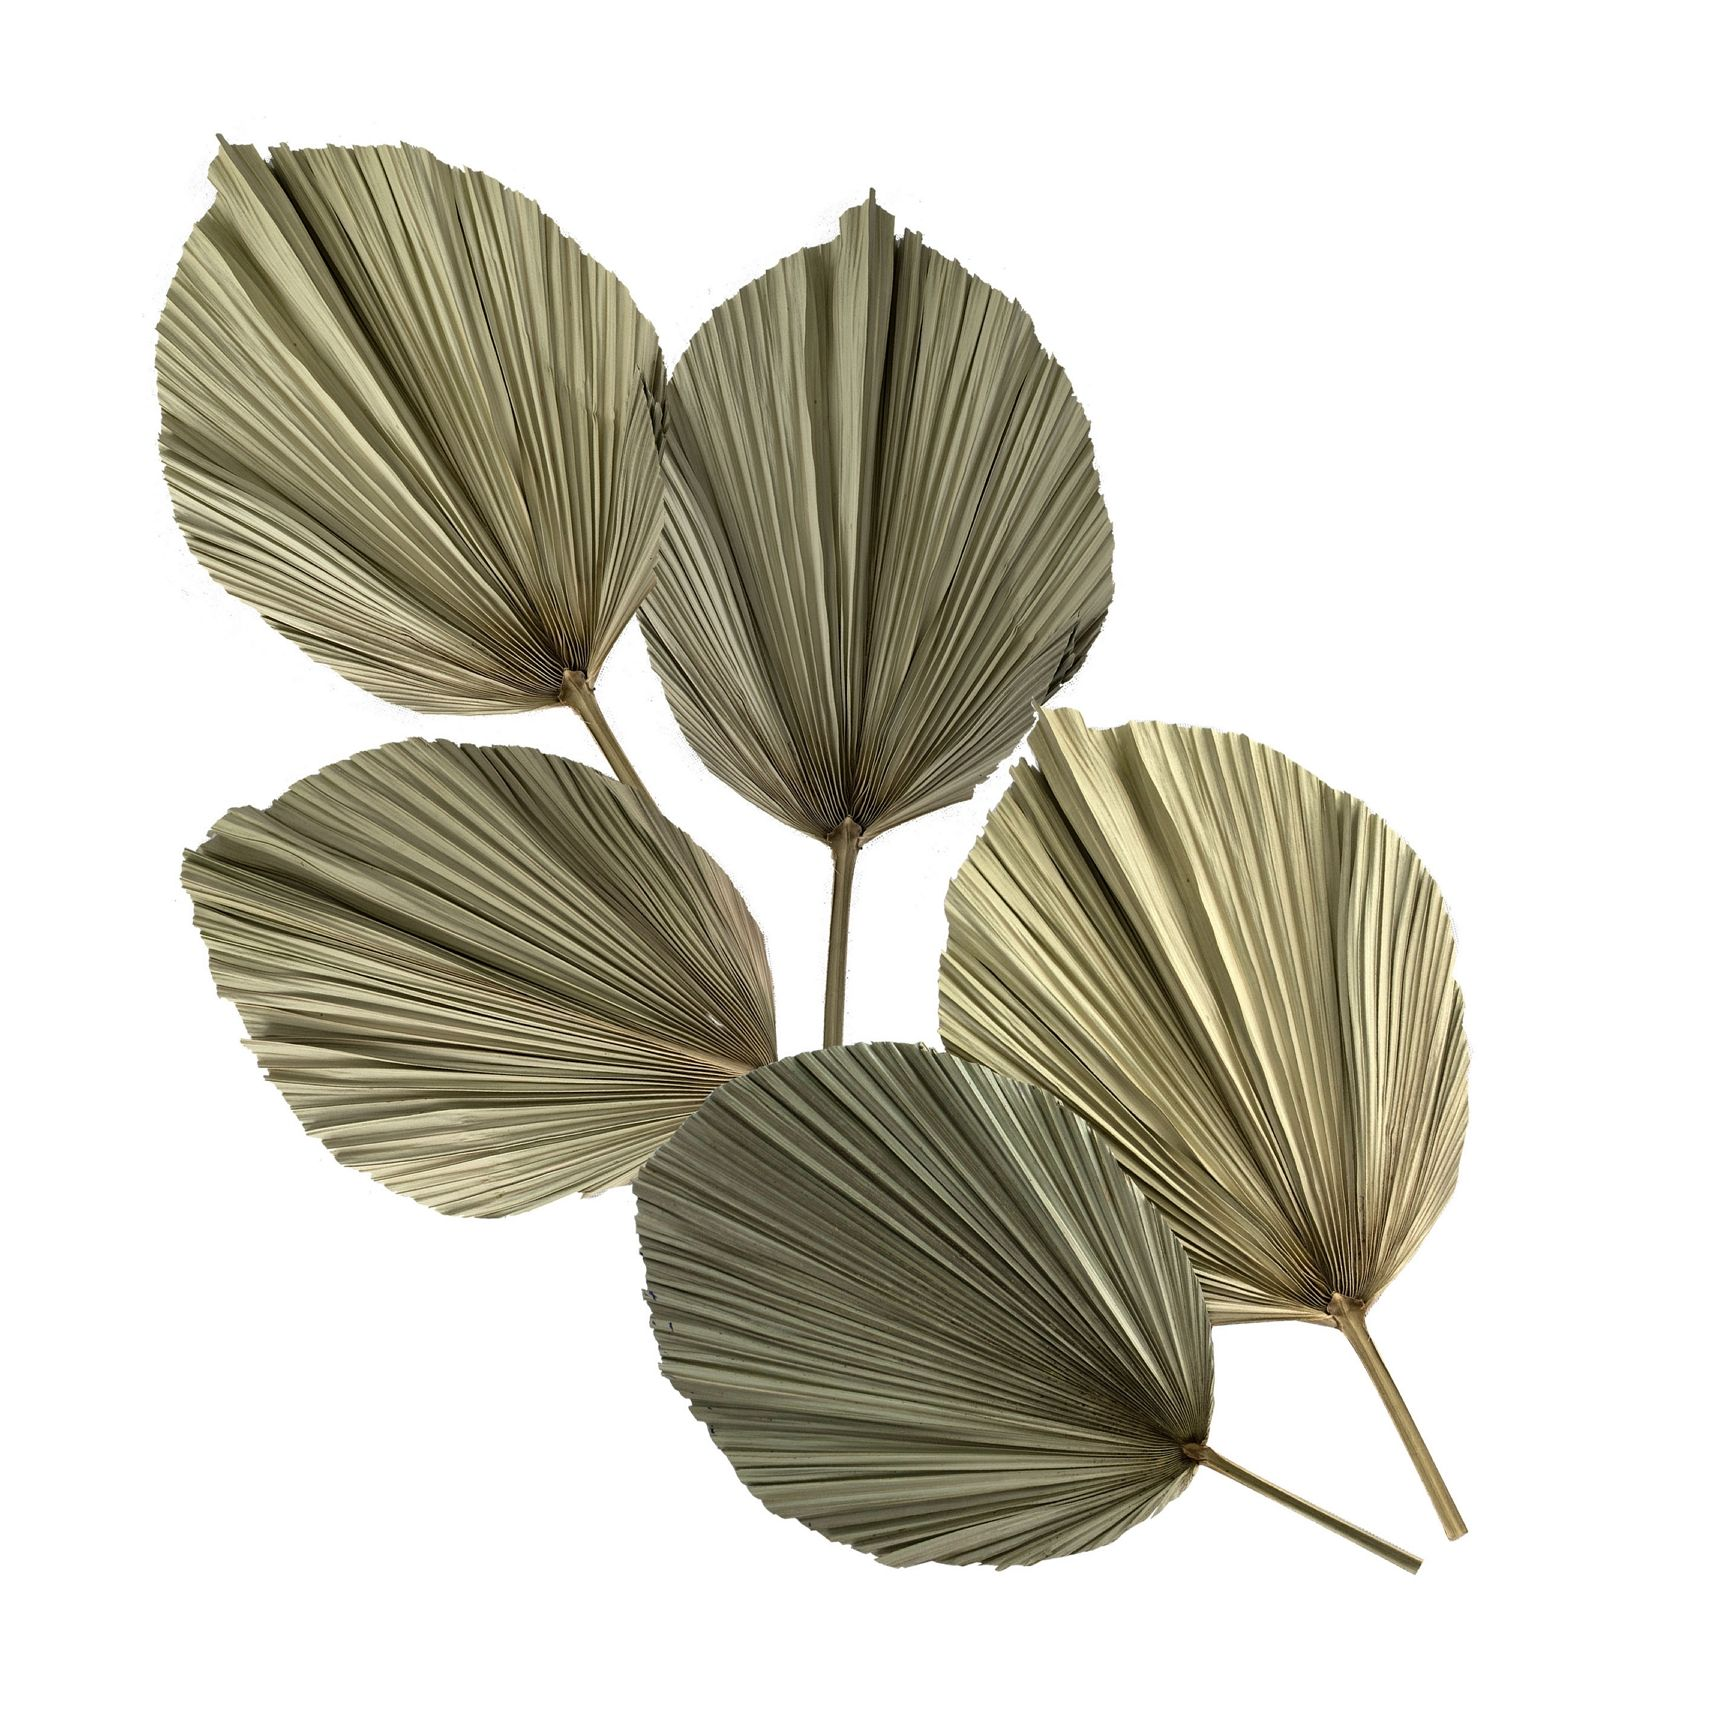 Hot selling Amazon dried palm leaves & palm tree leaves for Wedding Decoration Flower